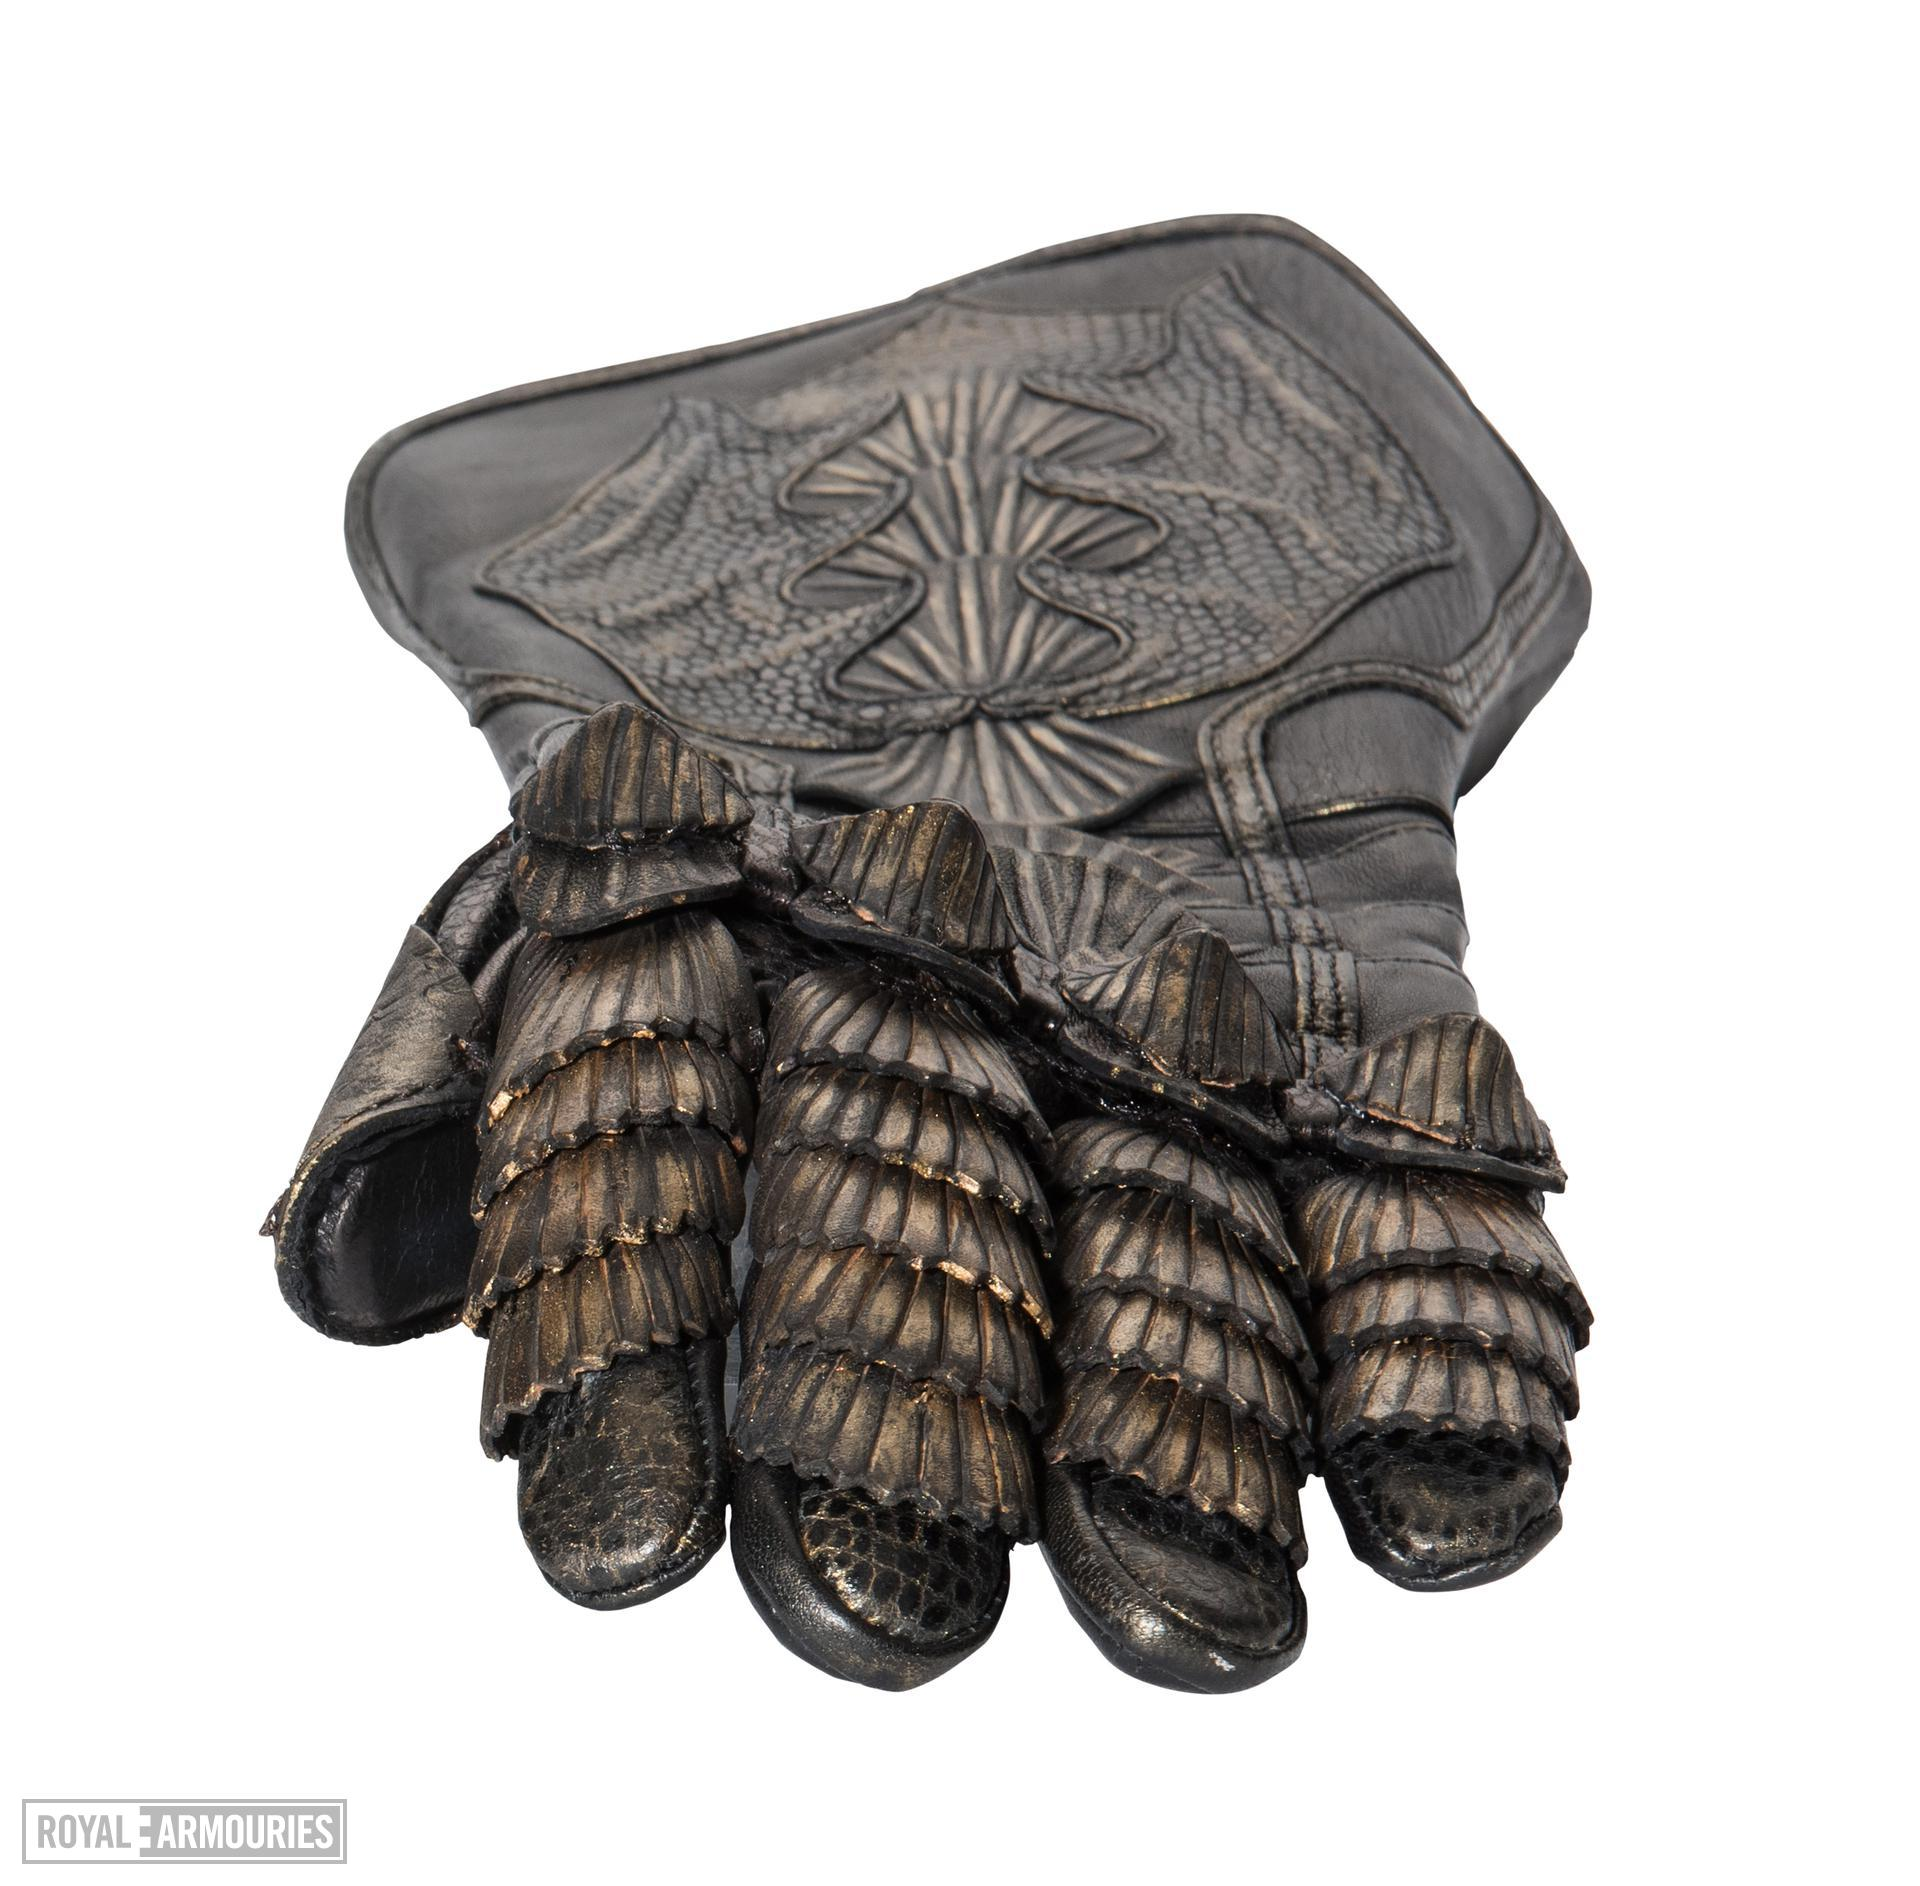 Left Glove - Left glove from The Lord Marshal's Costume Part of the Lord Marshal's costume from the film the Chronicles of Riddick. Ornately decorated and highly detailed. Bronze and black in appearance but made from leather.